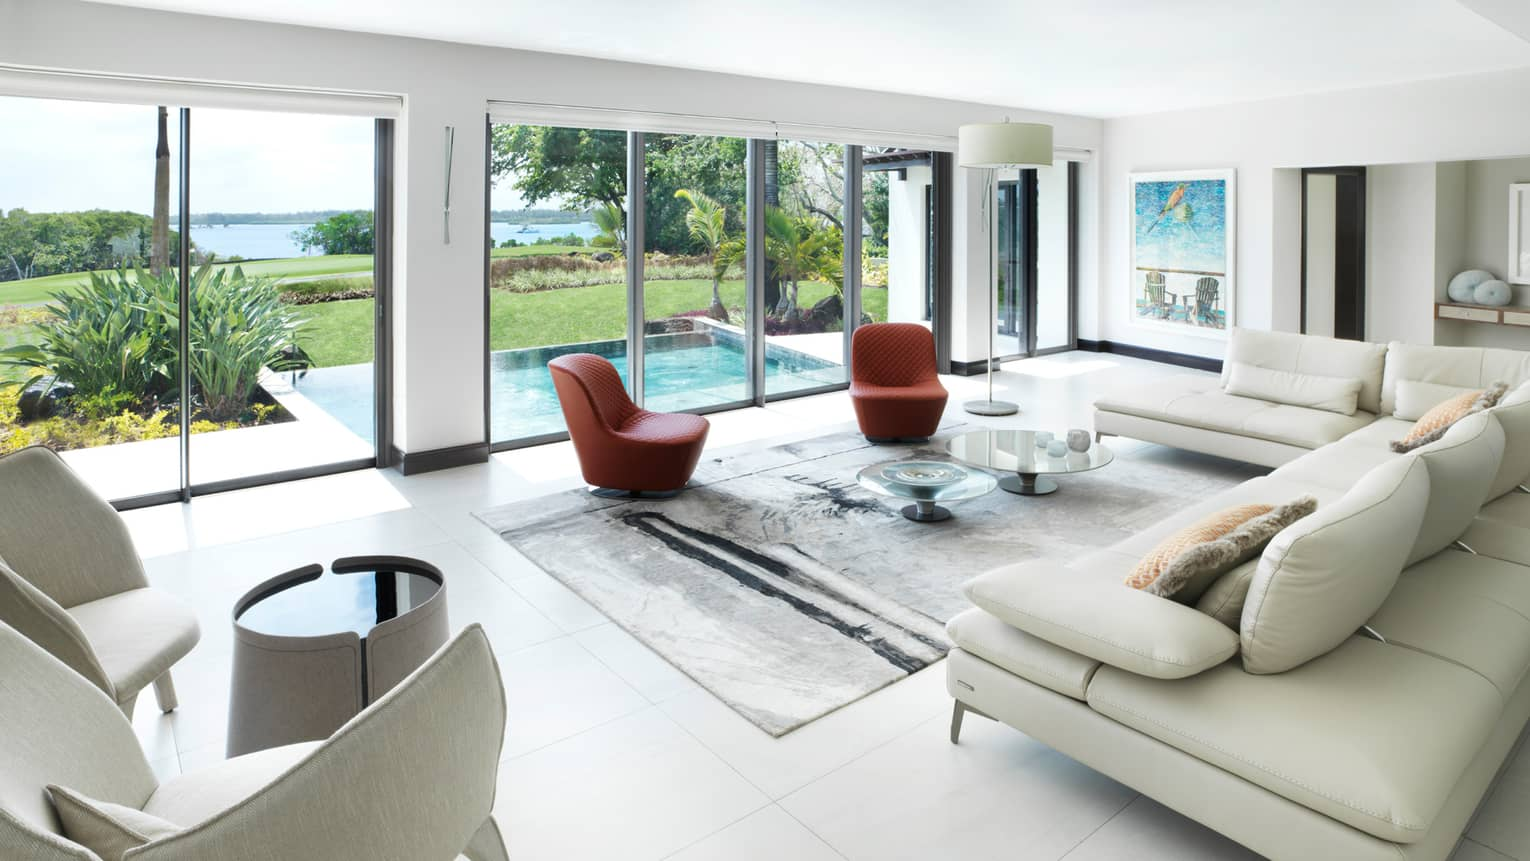 Bright, modern living room with L-shaped white leather sofa, red chairs, wall of sunny windows